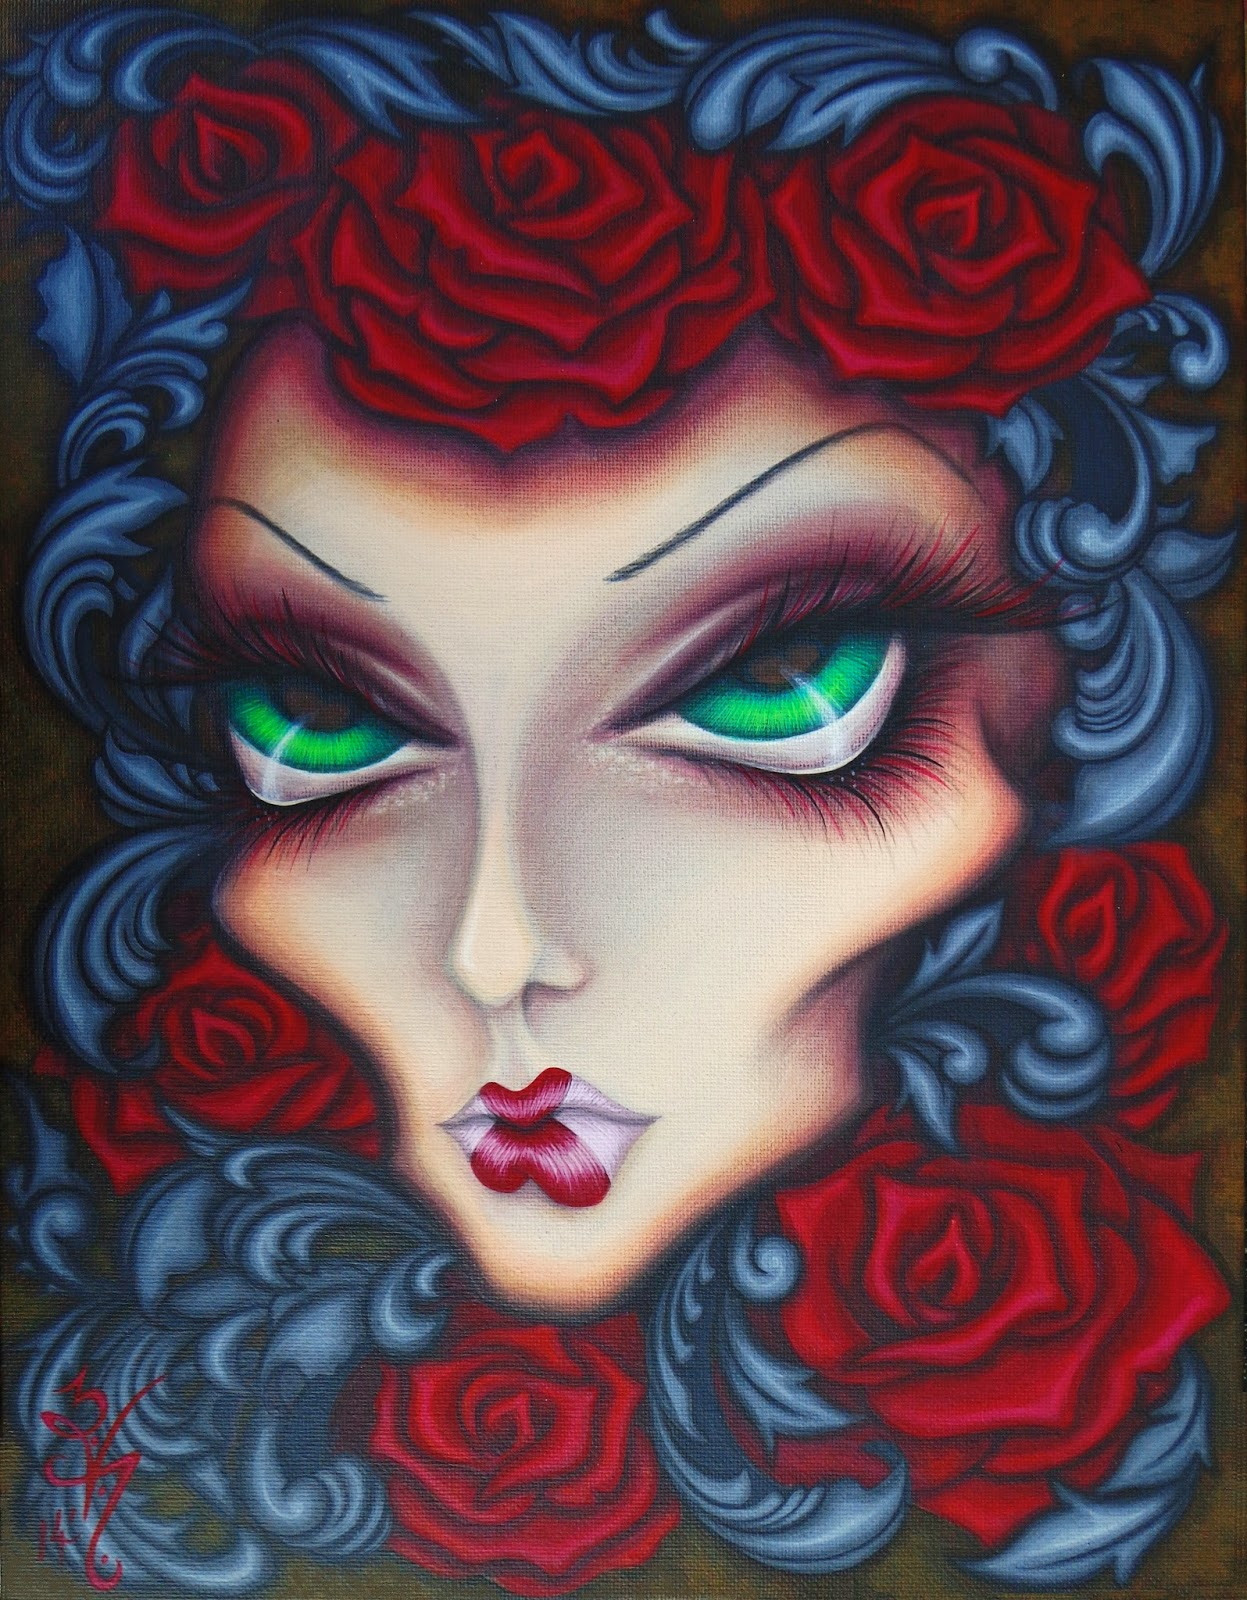 https://www.etsy.com/listing/195209998/original-fantasy-lowbrow-woman-girl-face?ref=shop_home_active_2